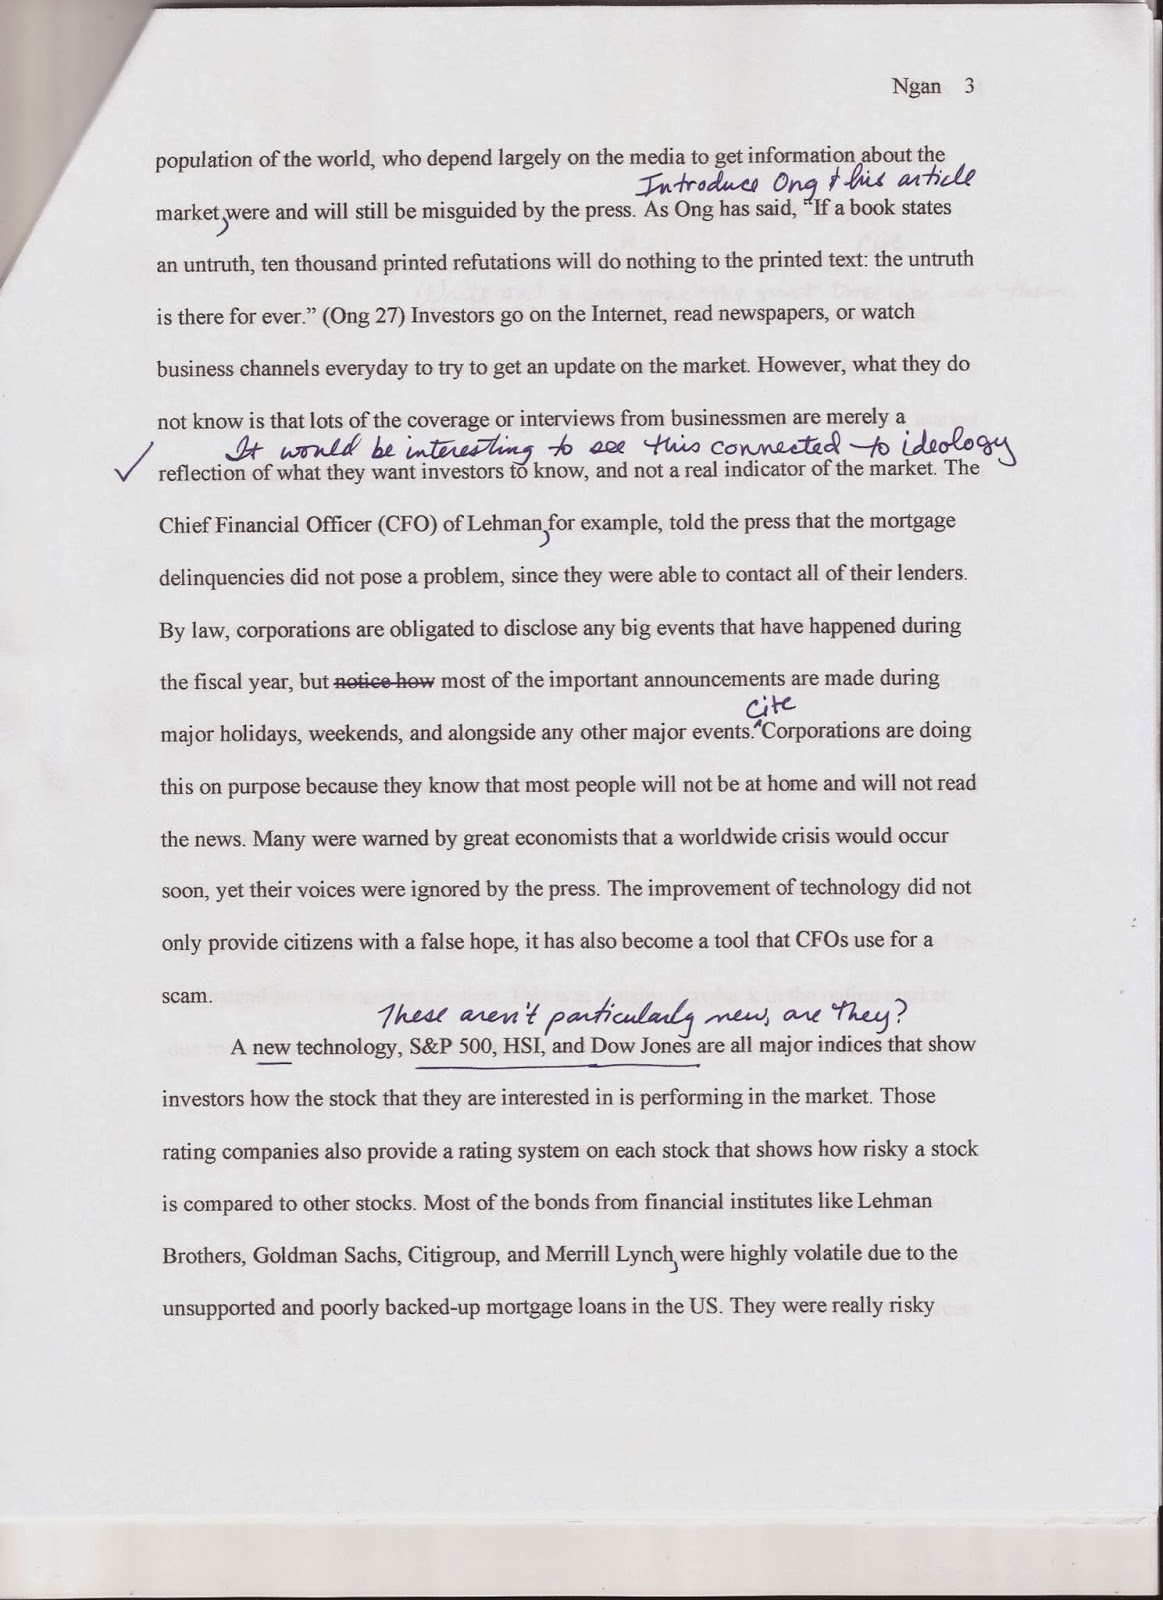 college application essay help inspiring essays they answer all questions about their assault lucidly and completely as many times as is necessary it can be used as a speech or as an essay for class